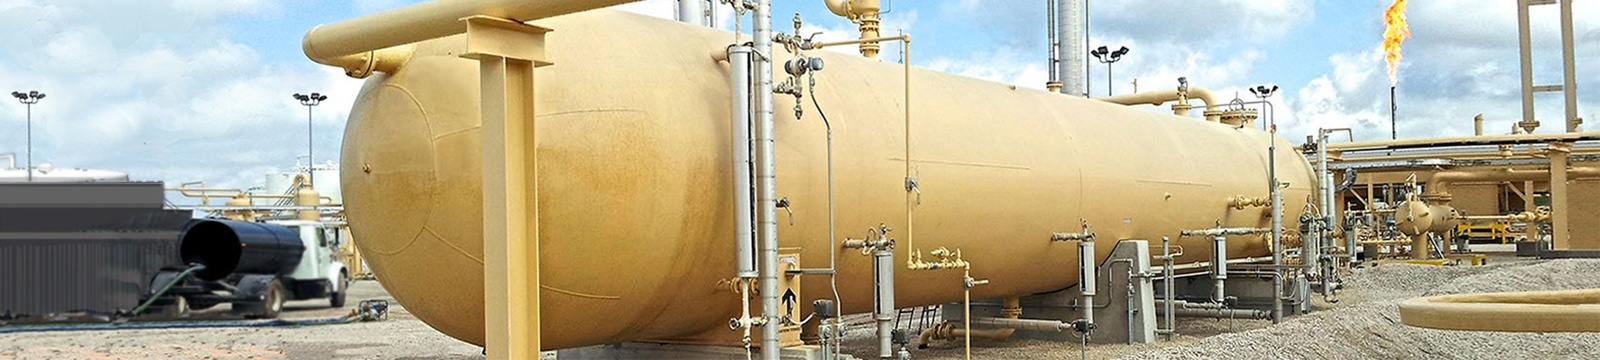 LPG & NGL Storage and Process Vessel R-Stamp Modifications___.jpg